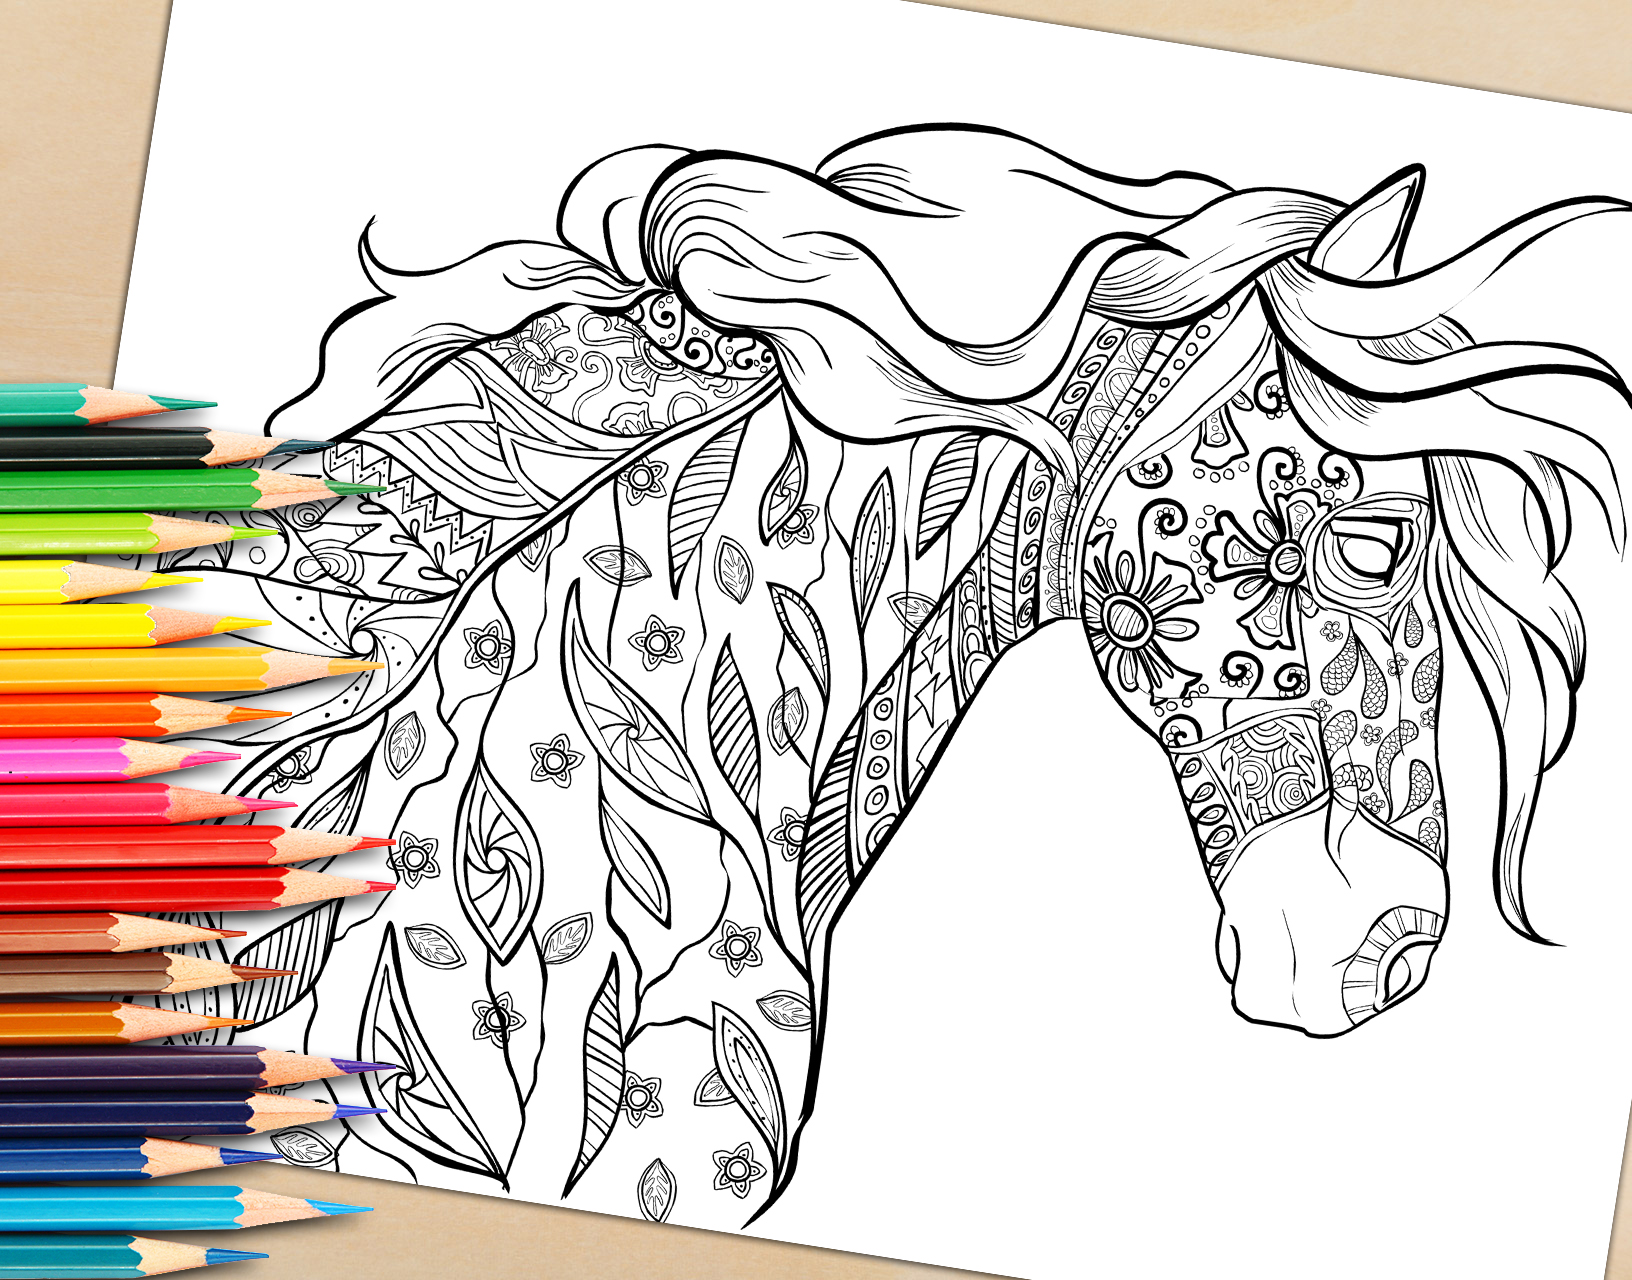 adult coloring book page decorative horse coloring page for download